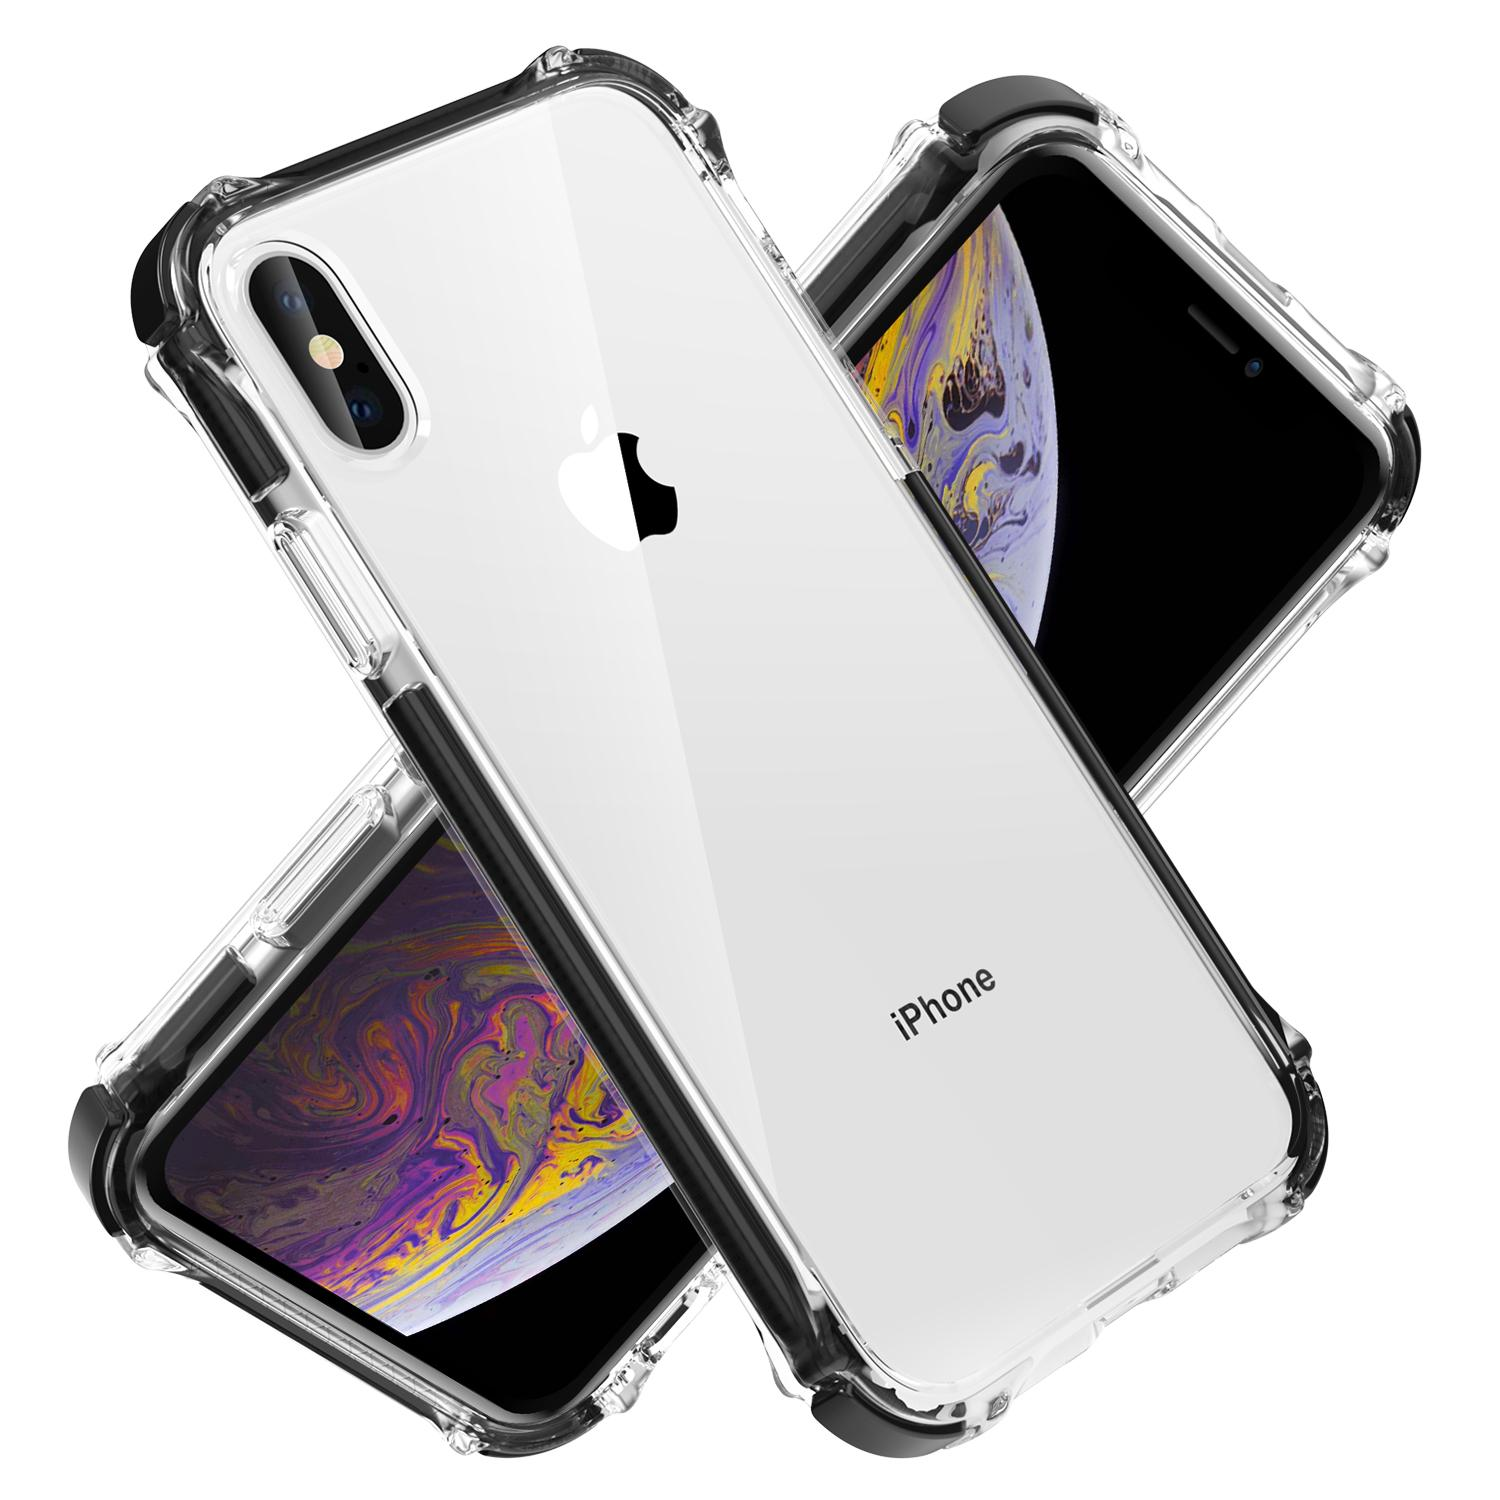 be20c7634 Shockproof Clear Phone Case Cover For Iphone X Xs Xr Xsmax Case Luxury  Mobile Phone Shell For Apple Iphone X Cell Phone Cases Covers Cell Phone  Case Covers ...